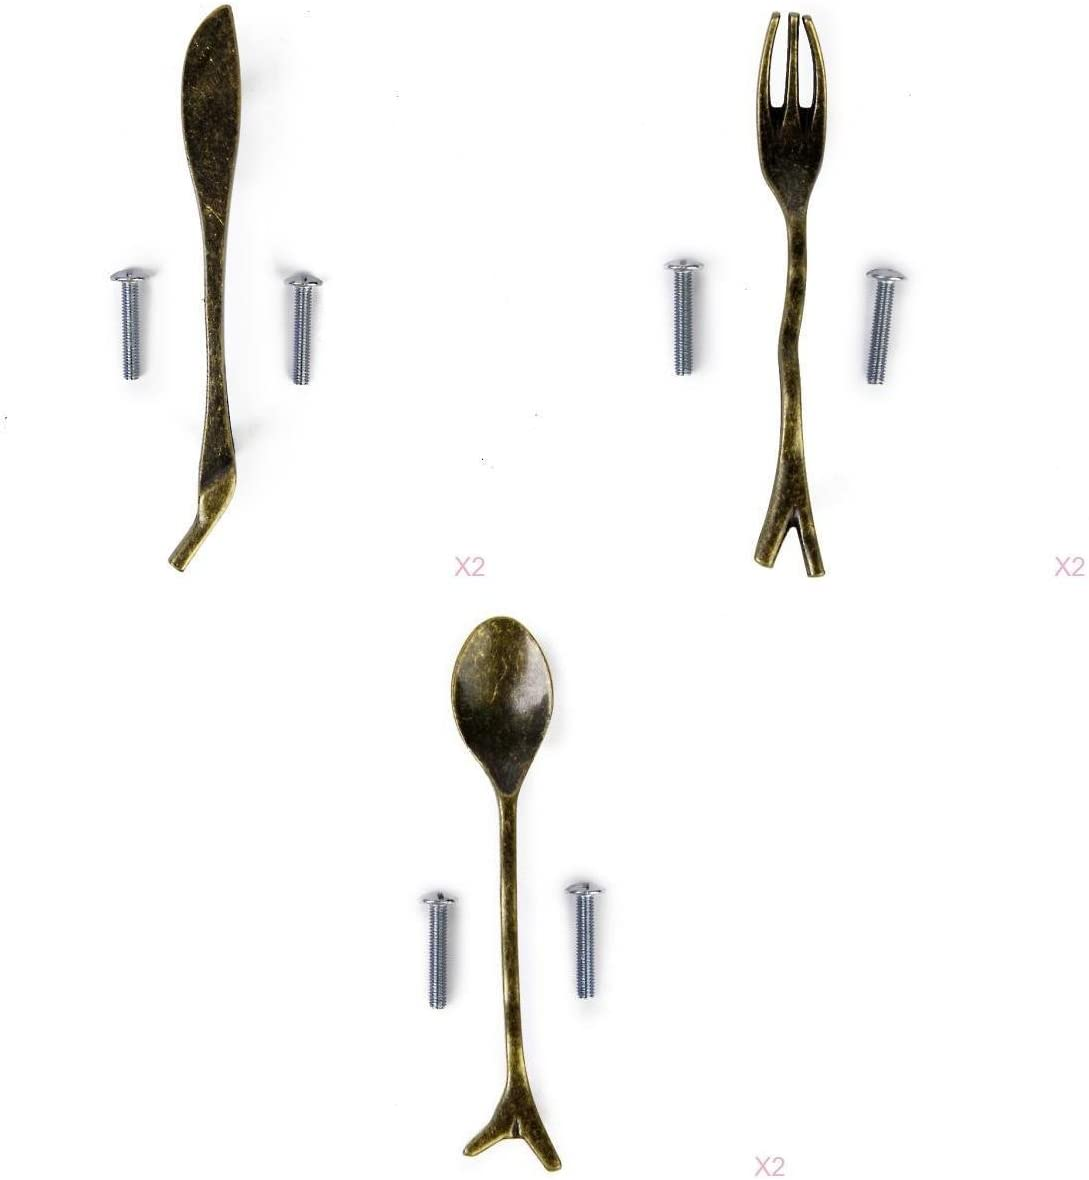 Nippon regular agency 3 Popular products Sets 6pcs Knife Fork Spoon Kitchen Closet Pull Cabinet Drawer